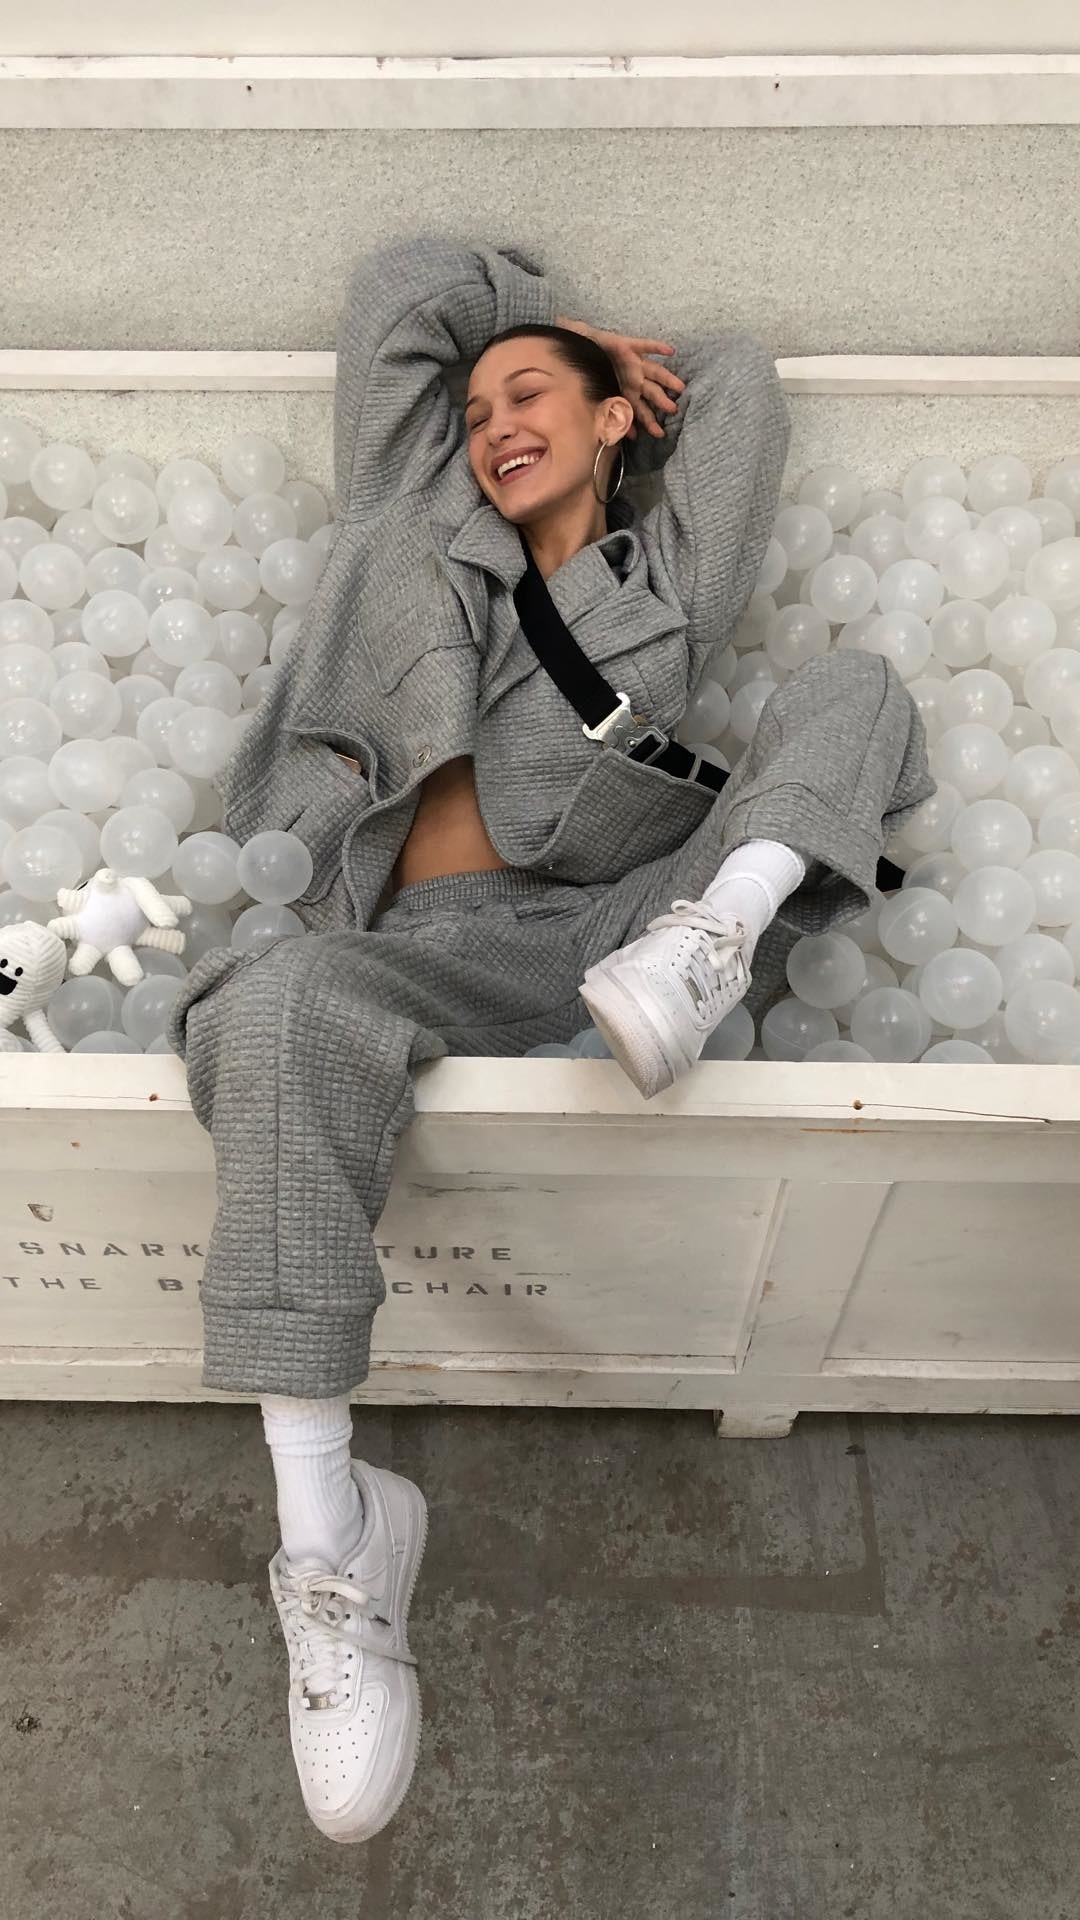 The Weeknd put a smile on Bella Hadid's face.